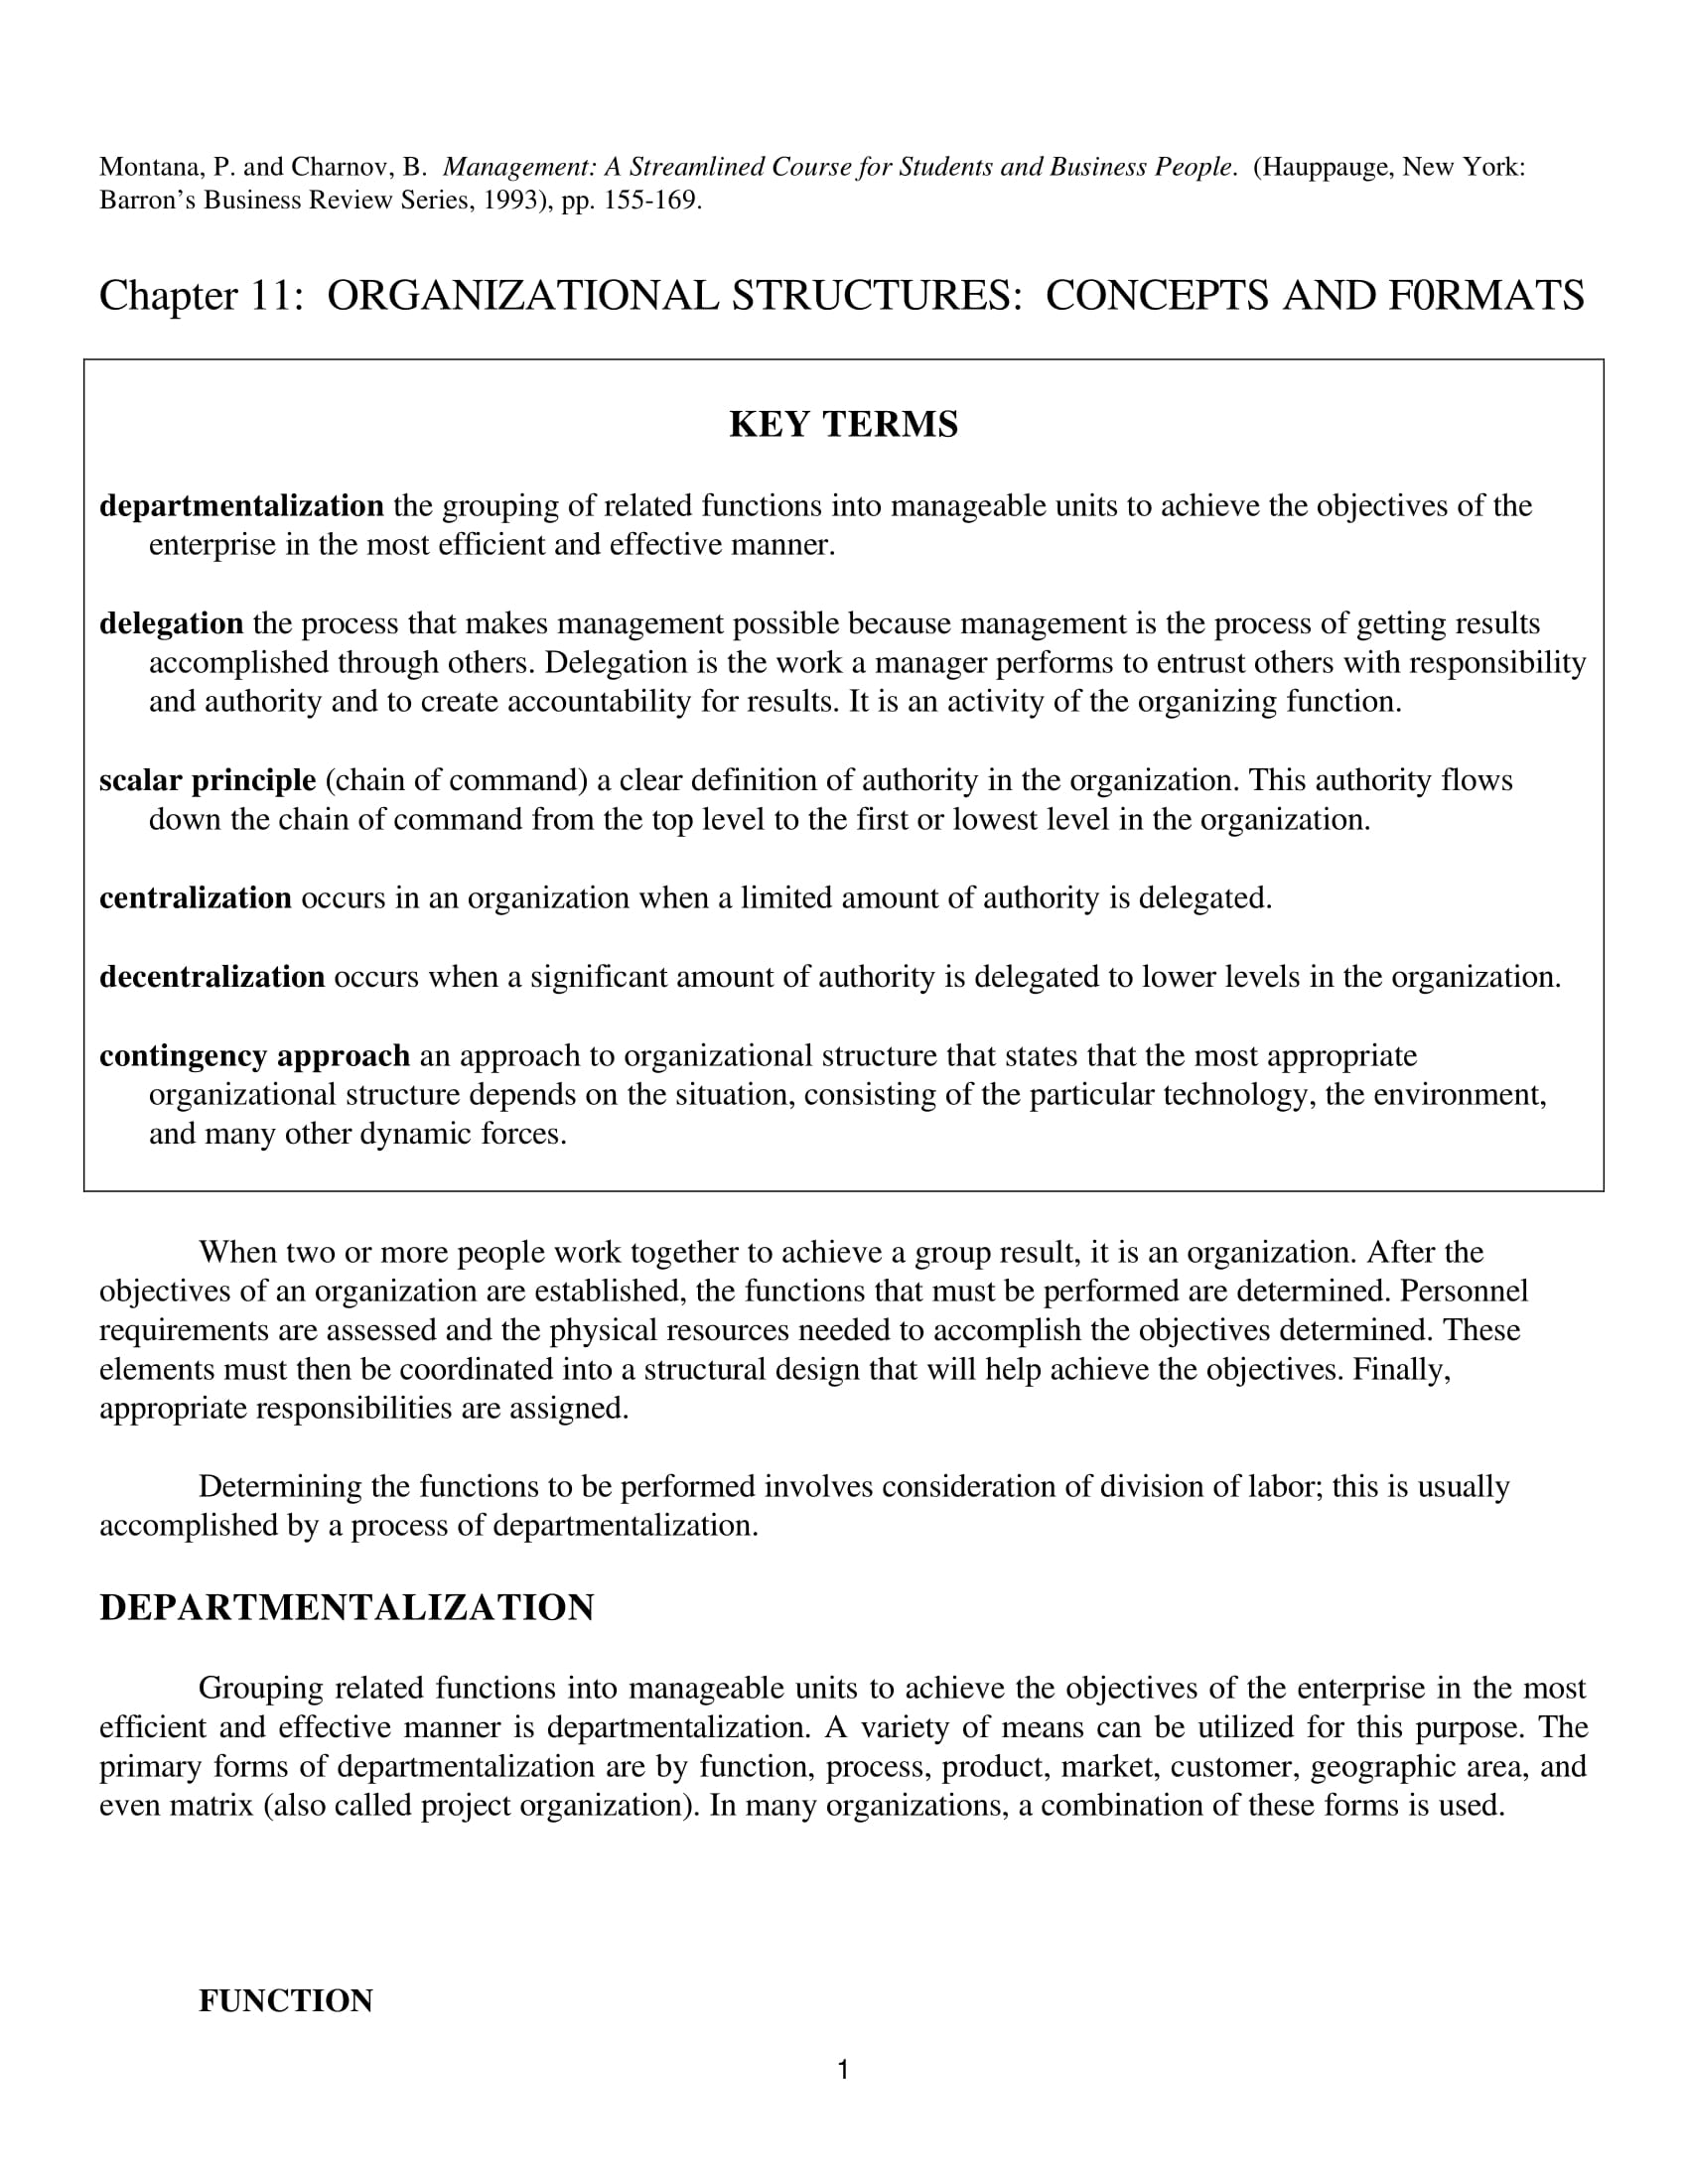 organizational structures concepts formats and examples